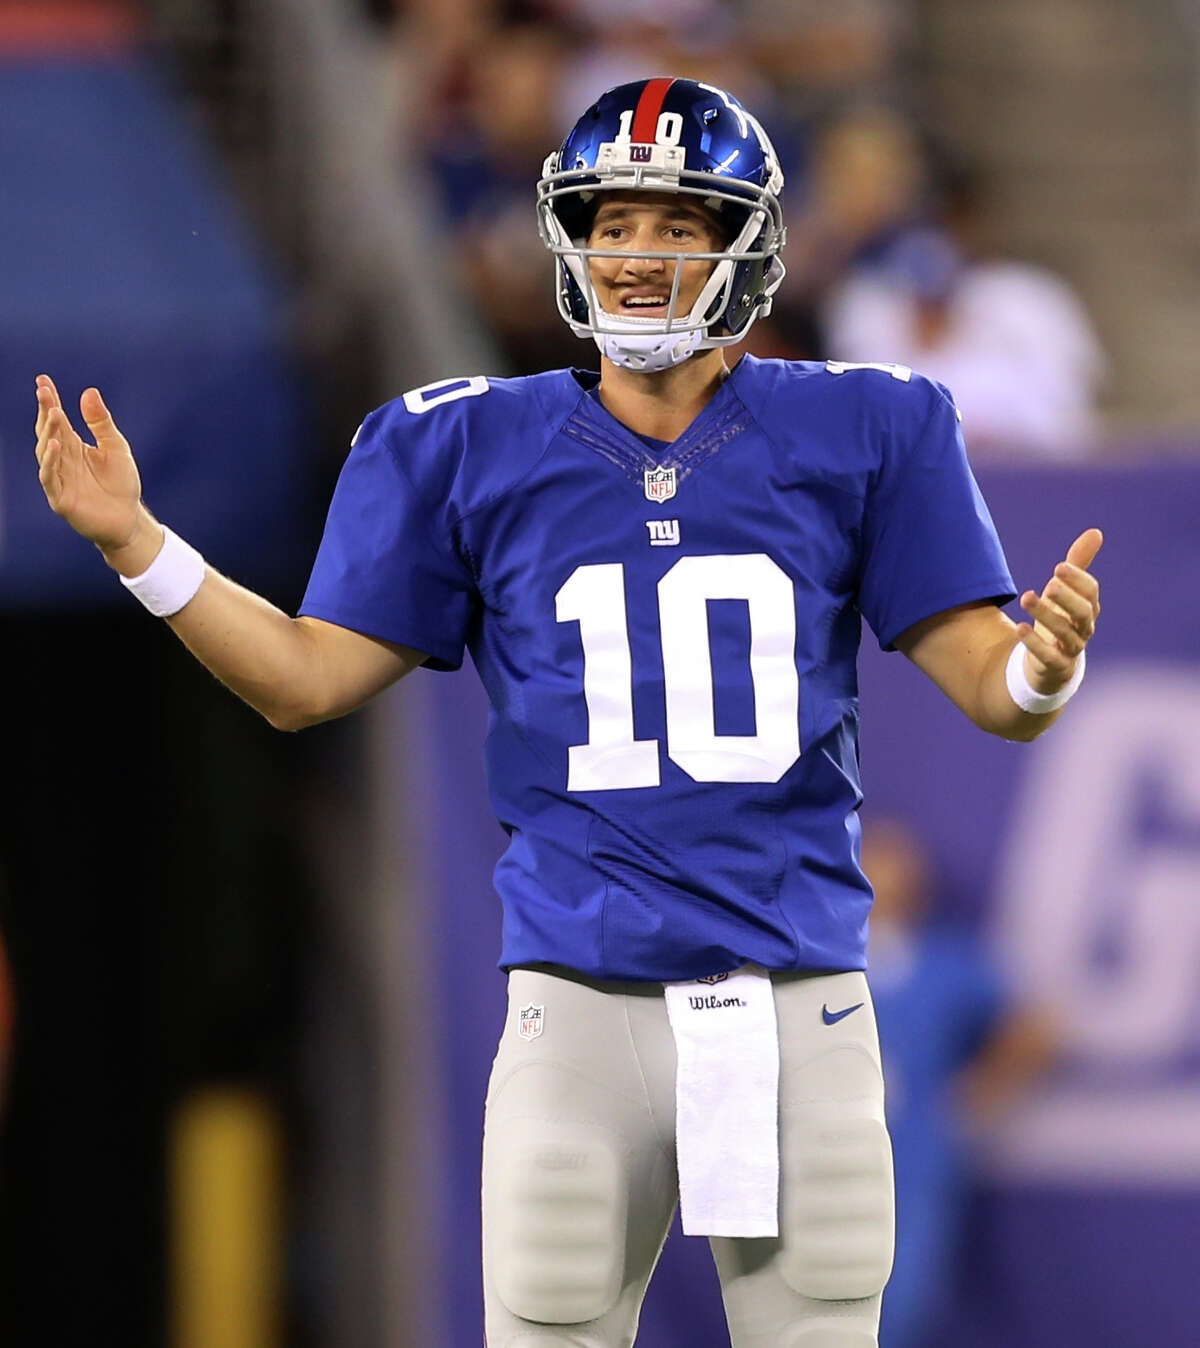 Eli Manning will need to play better than he did in the preseason if the Giants are to end their two-year playoff drought.